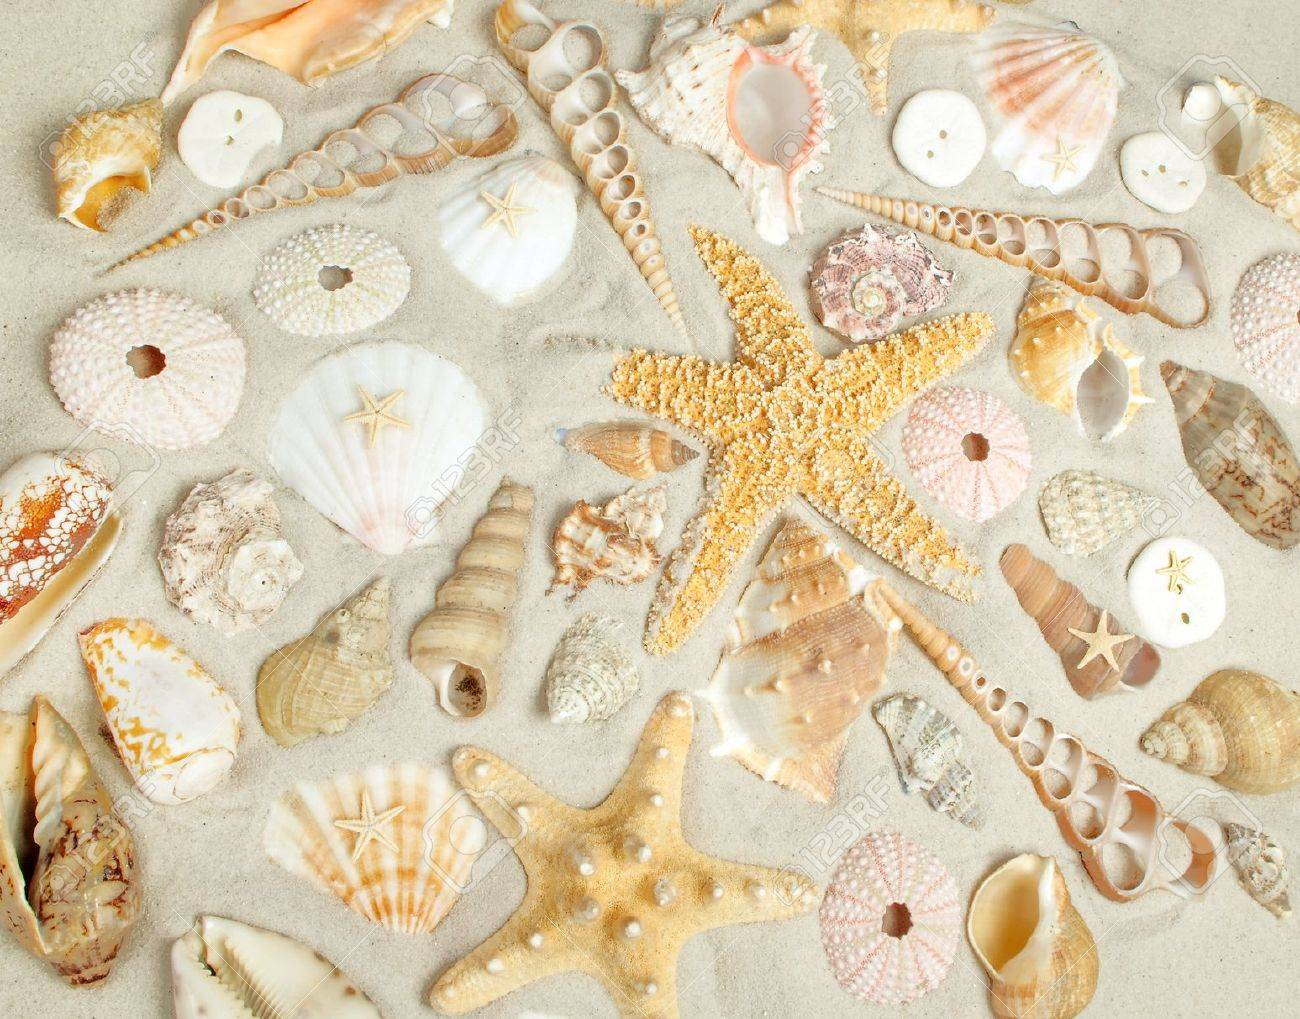 assorted seashells on a filling the frame stock photo